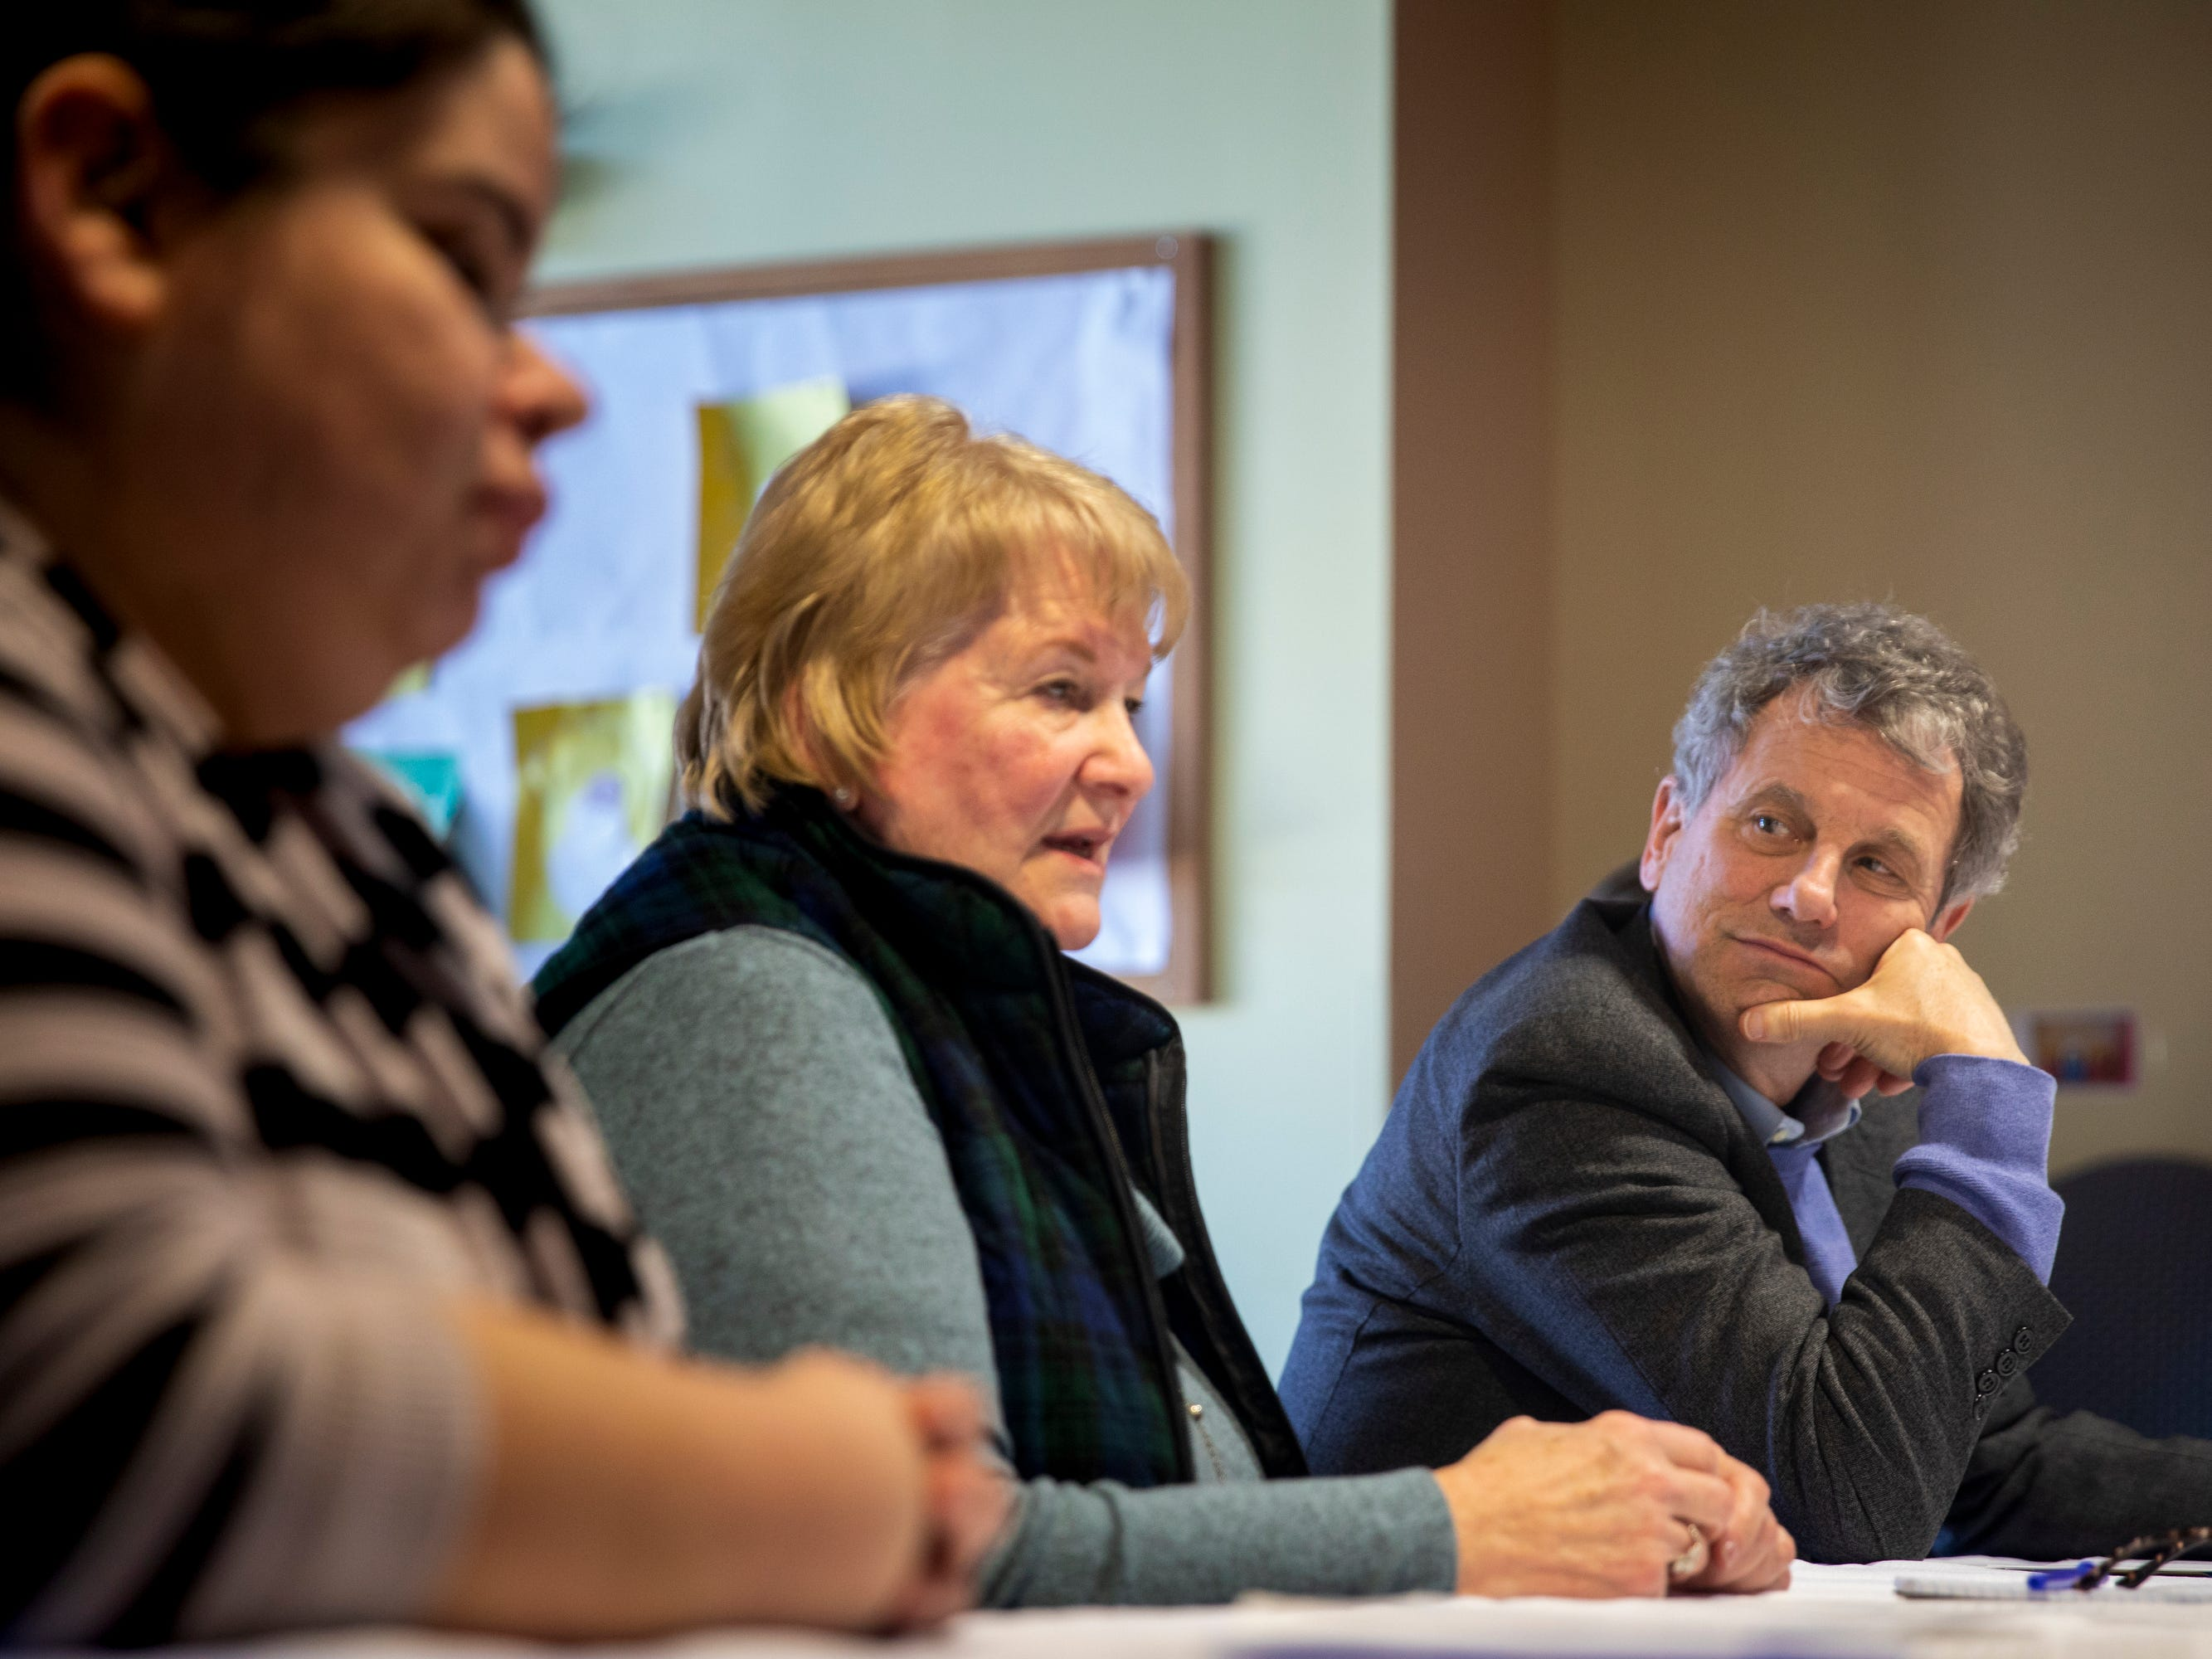 Senator Sherrod Brown listens to Anne Grassie talk about the affects of the opioid epidemic on childcare during a roundtable with caregiving professionals at Lakes Region Child Care in Laconia, N.H. Saturday, February 9, 2019.